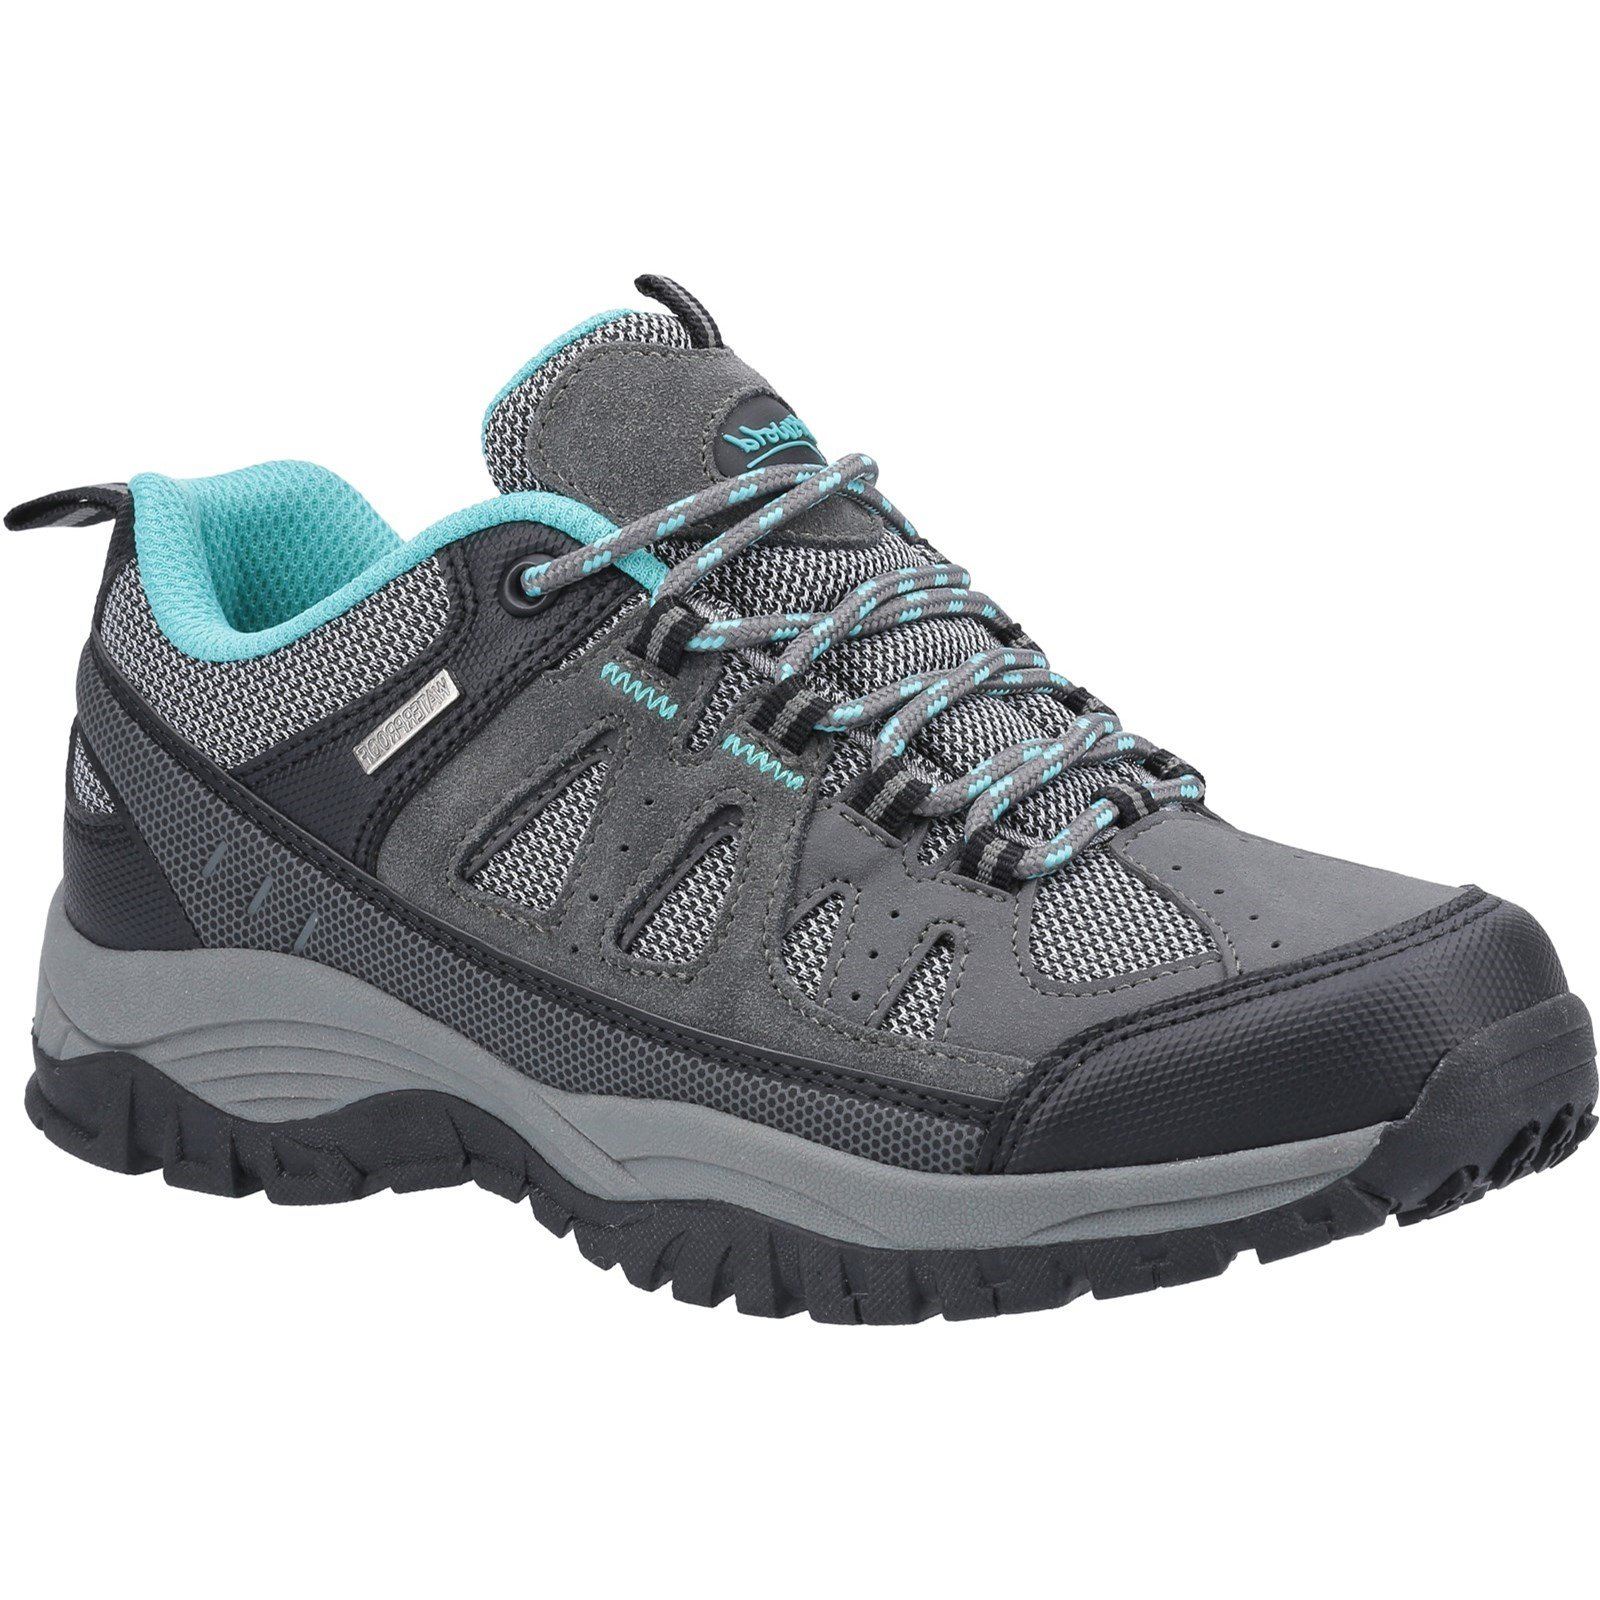 Cotswold Women's Maisemore Low Hiking Boot Grey 32988 - Grey 8